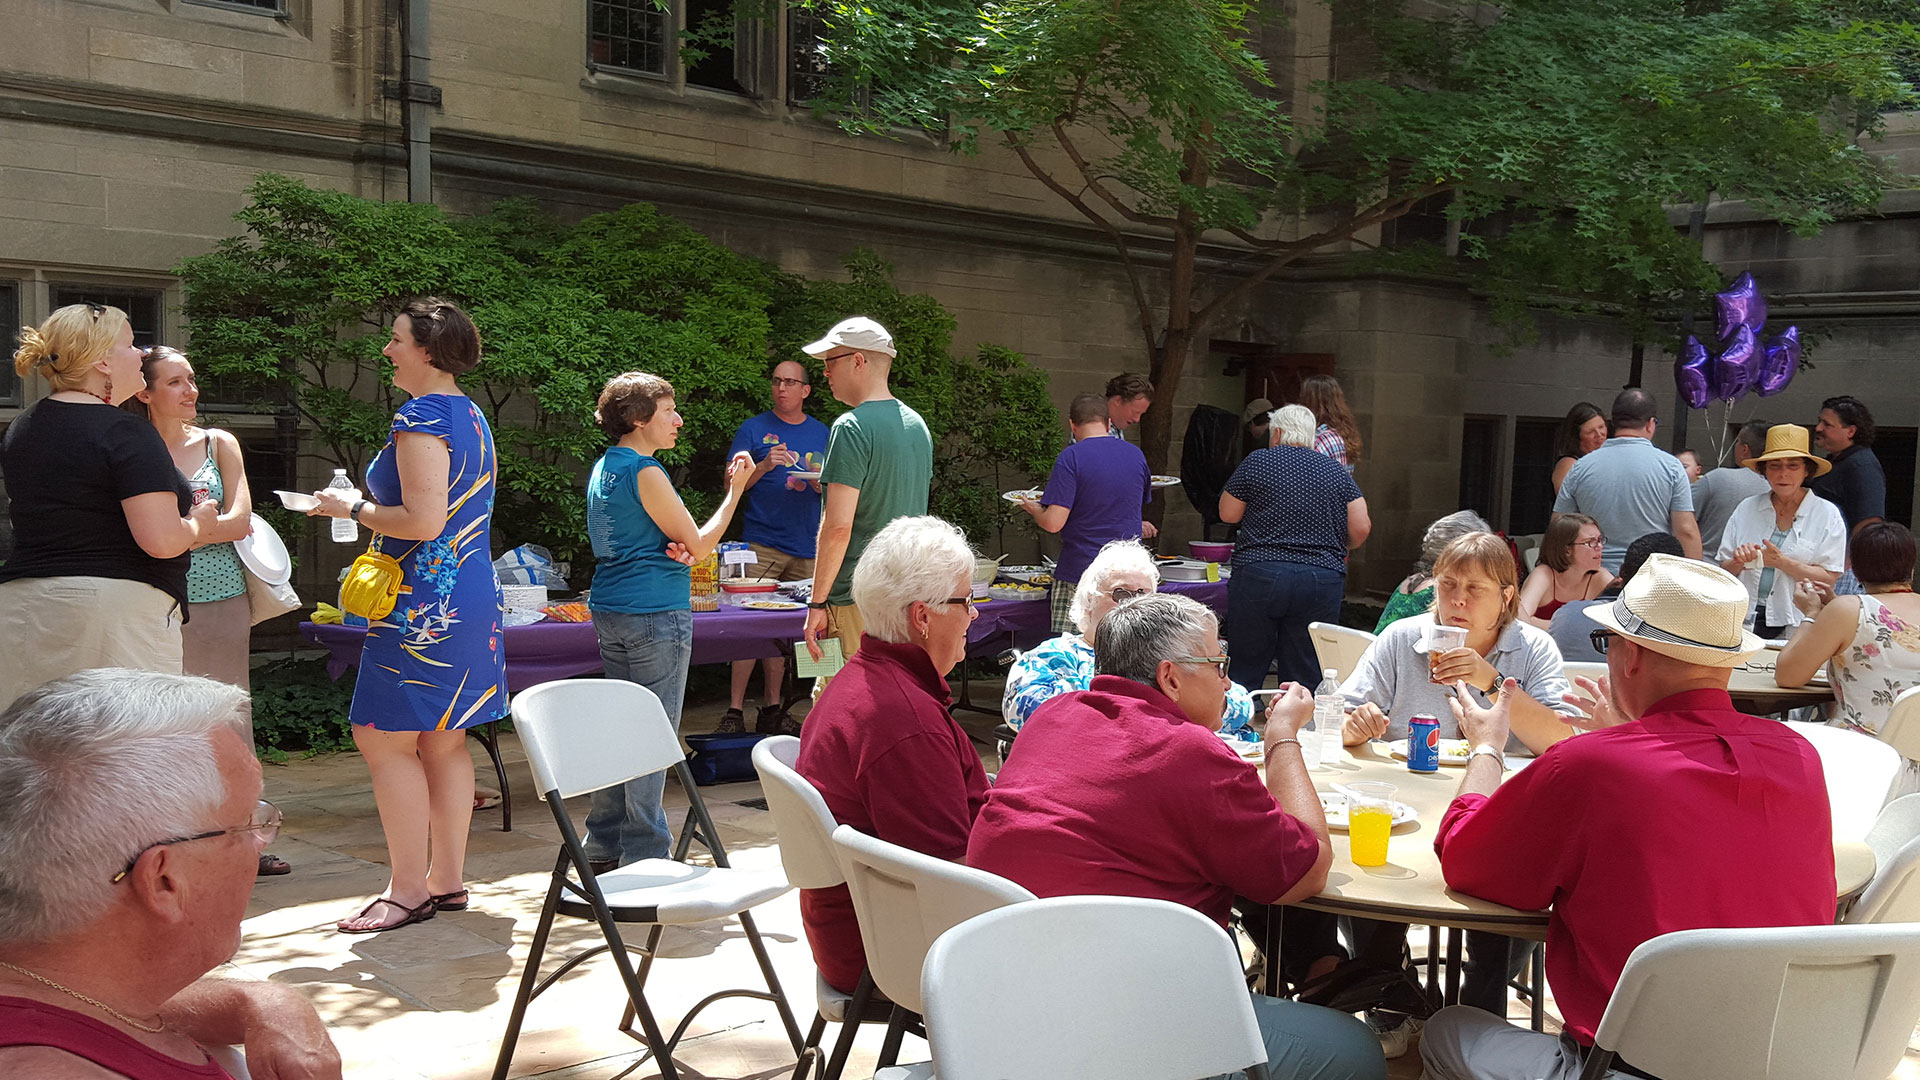 Renaissance City Choir Picnic